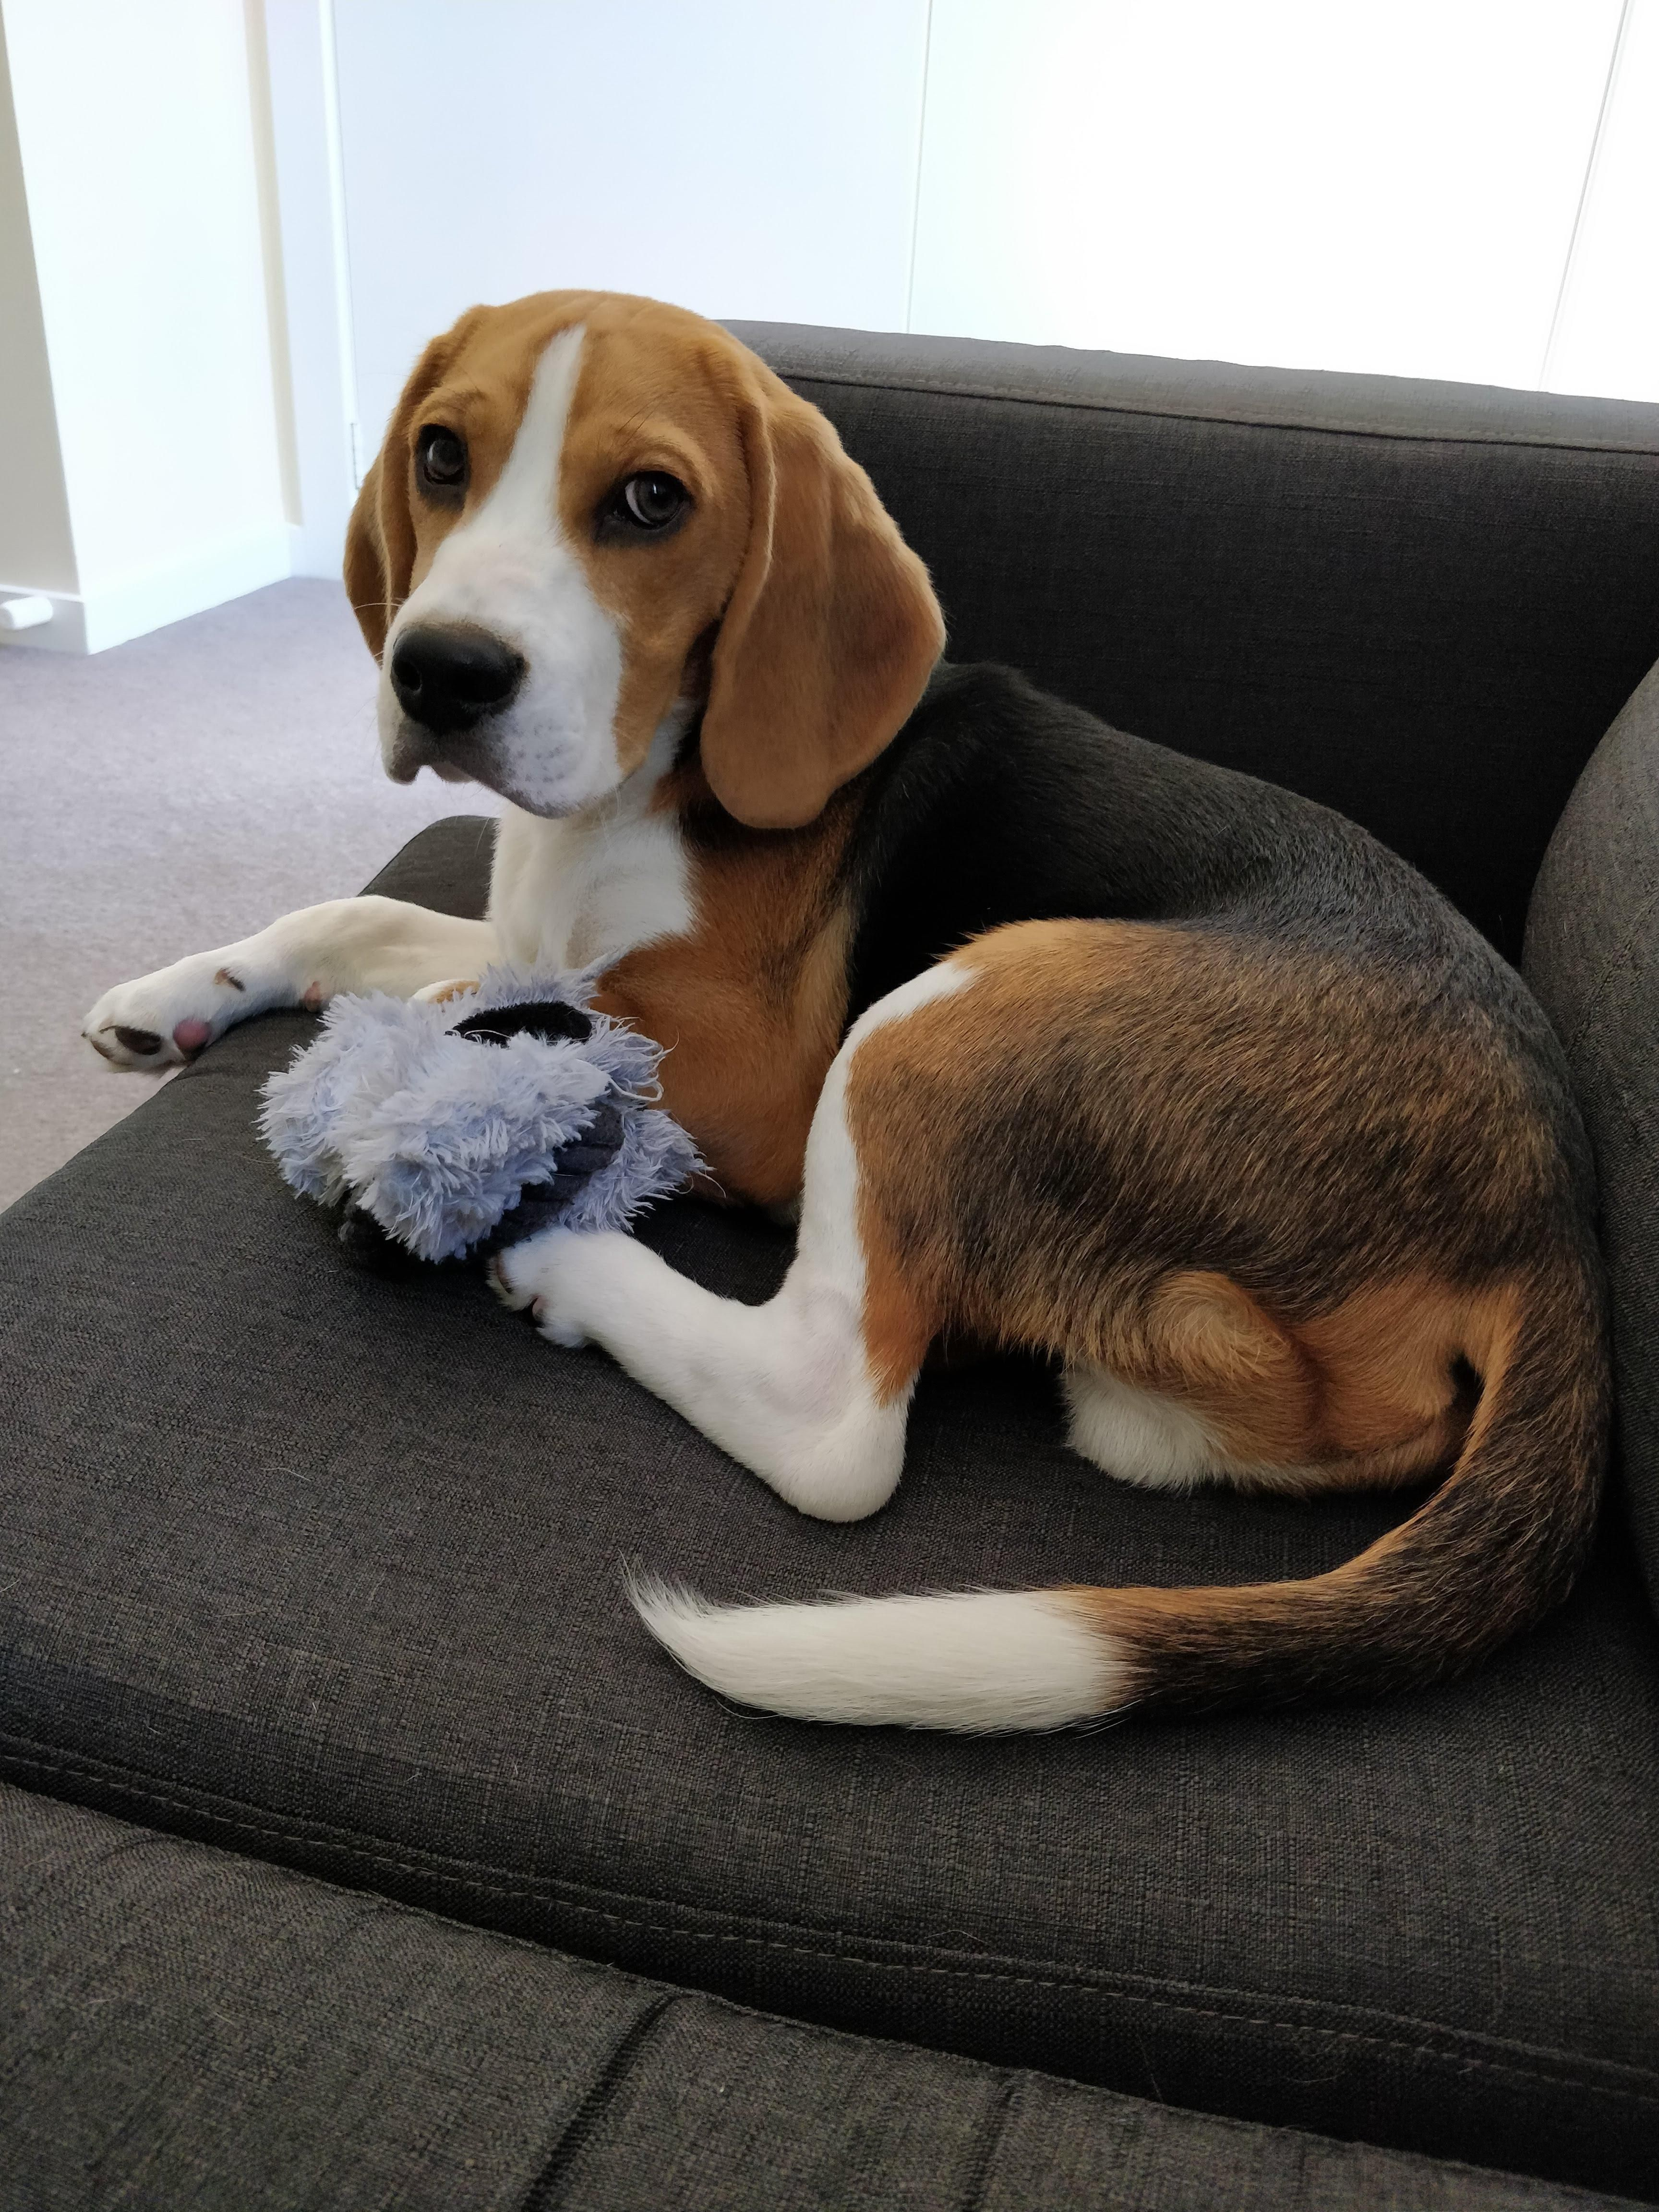 Pin By Rickey Smith On Beagles Beagle Dog Cute Baby Animals